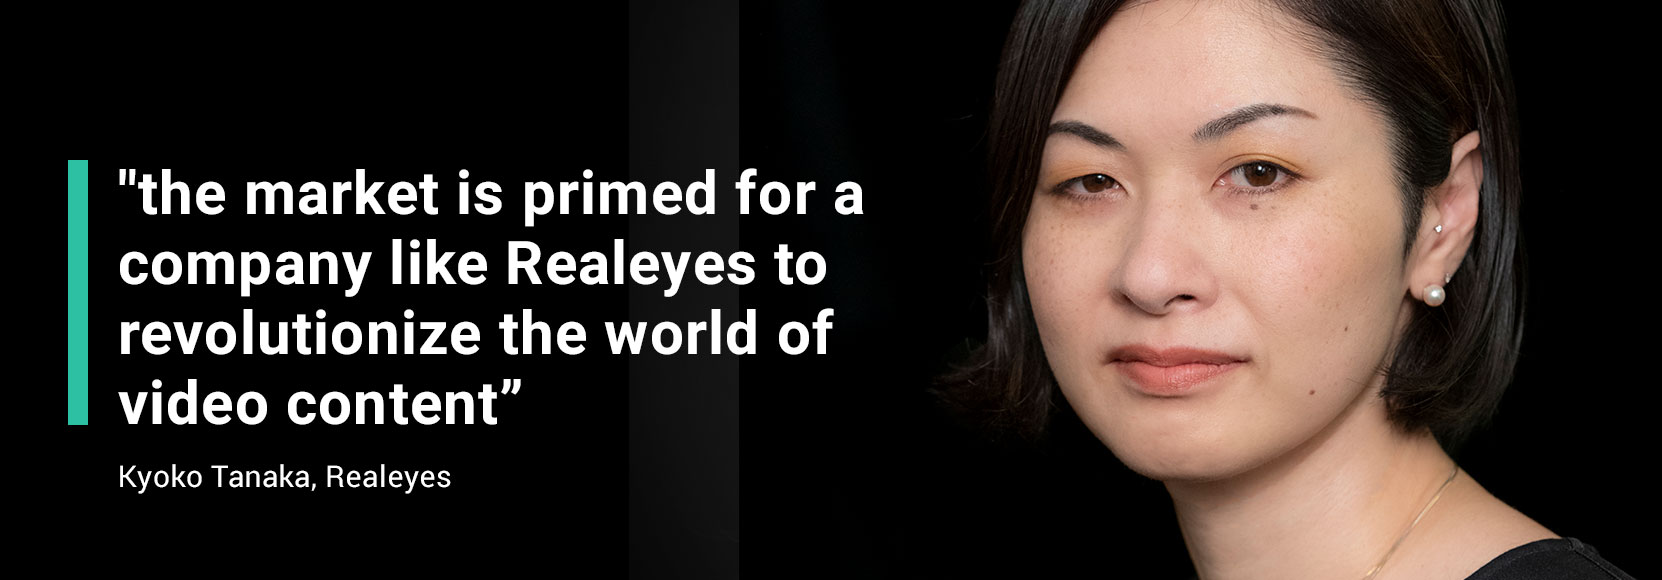 Kyoko Tanaka - Realeyes to revolutionise the world of video content